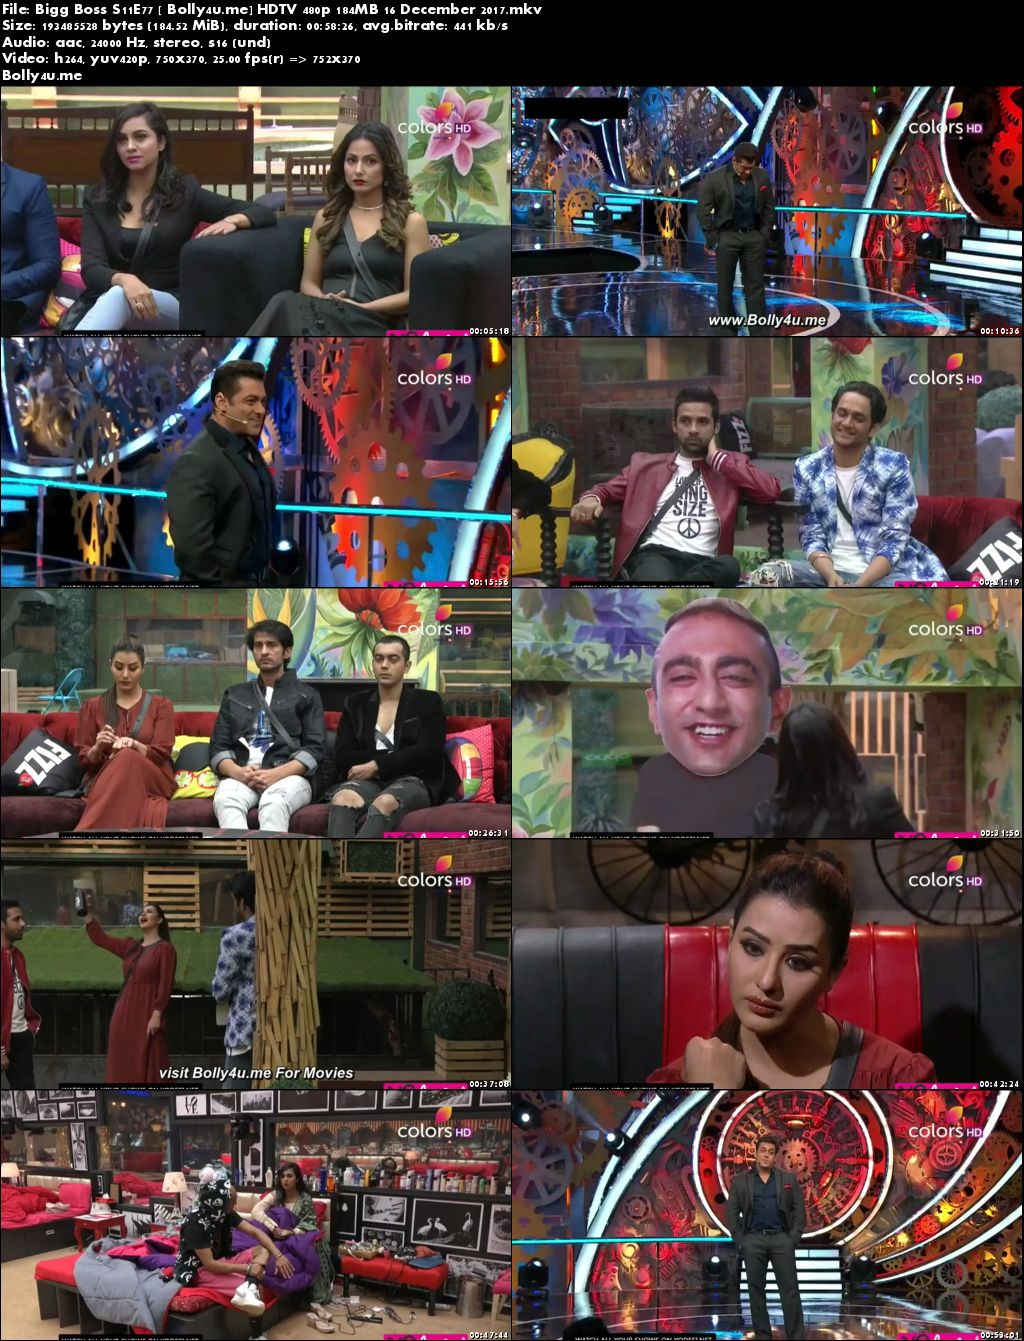 Bigg Boss S11E77 HDTV 480p 180MB 16 Dec 2017 Download